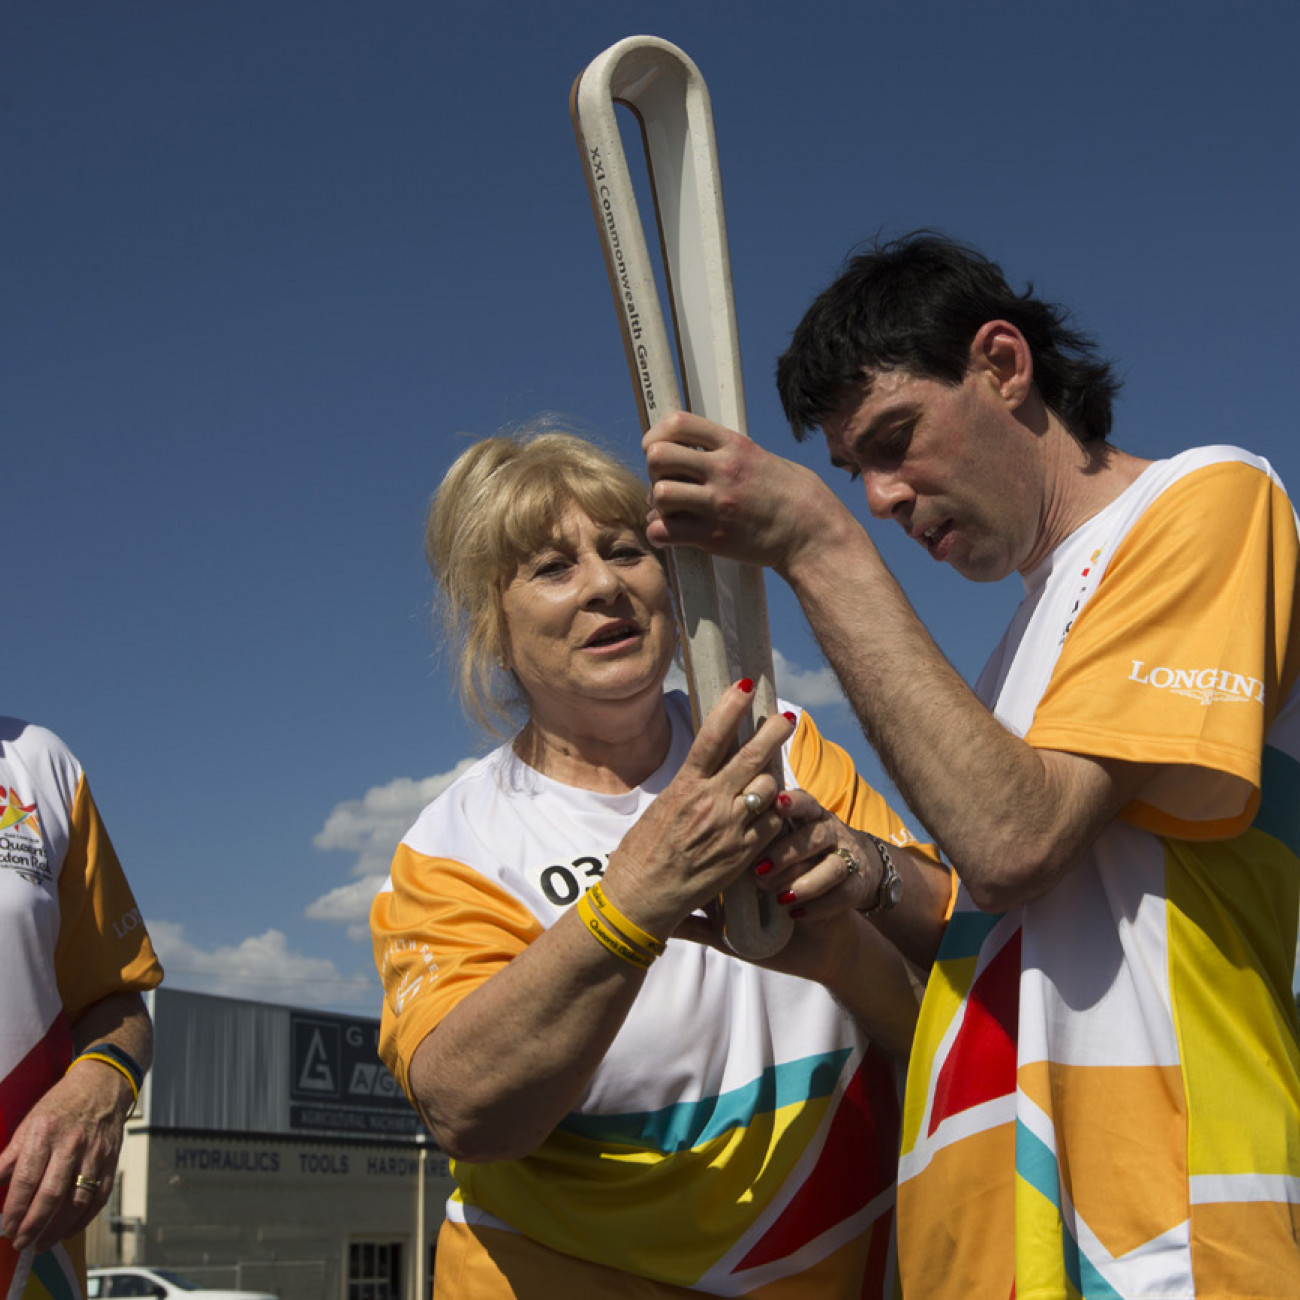 Batonbearers Anne Napoli and her son Patrick with the Baton